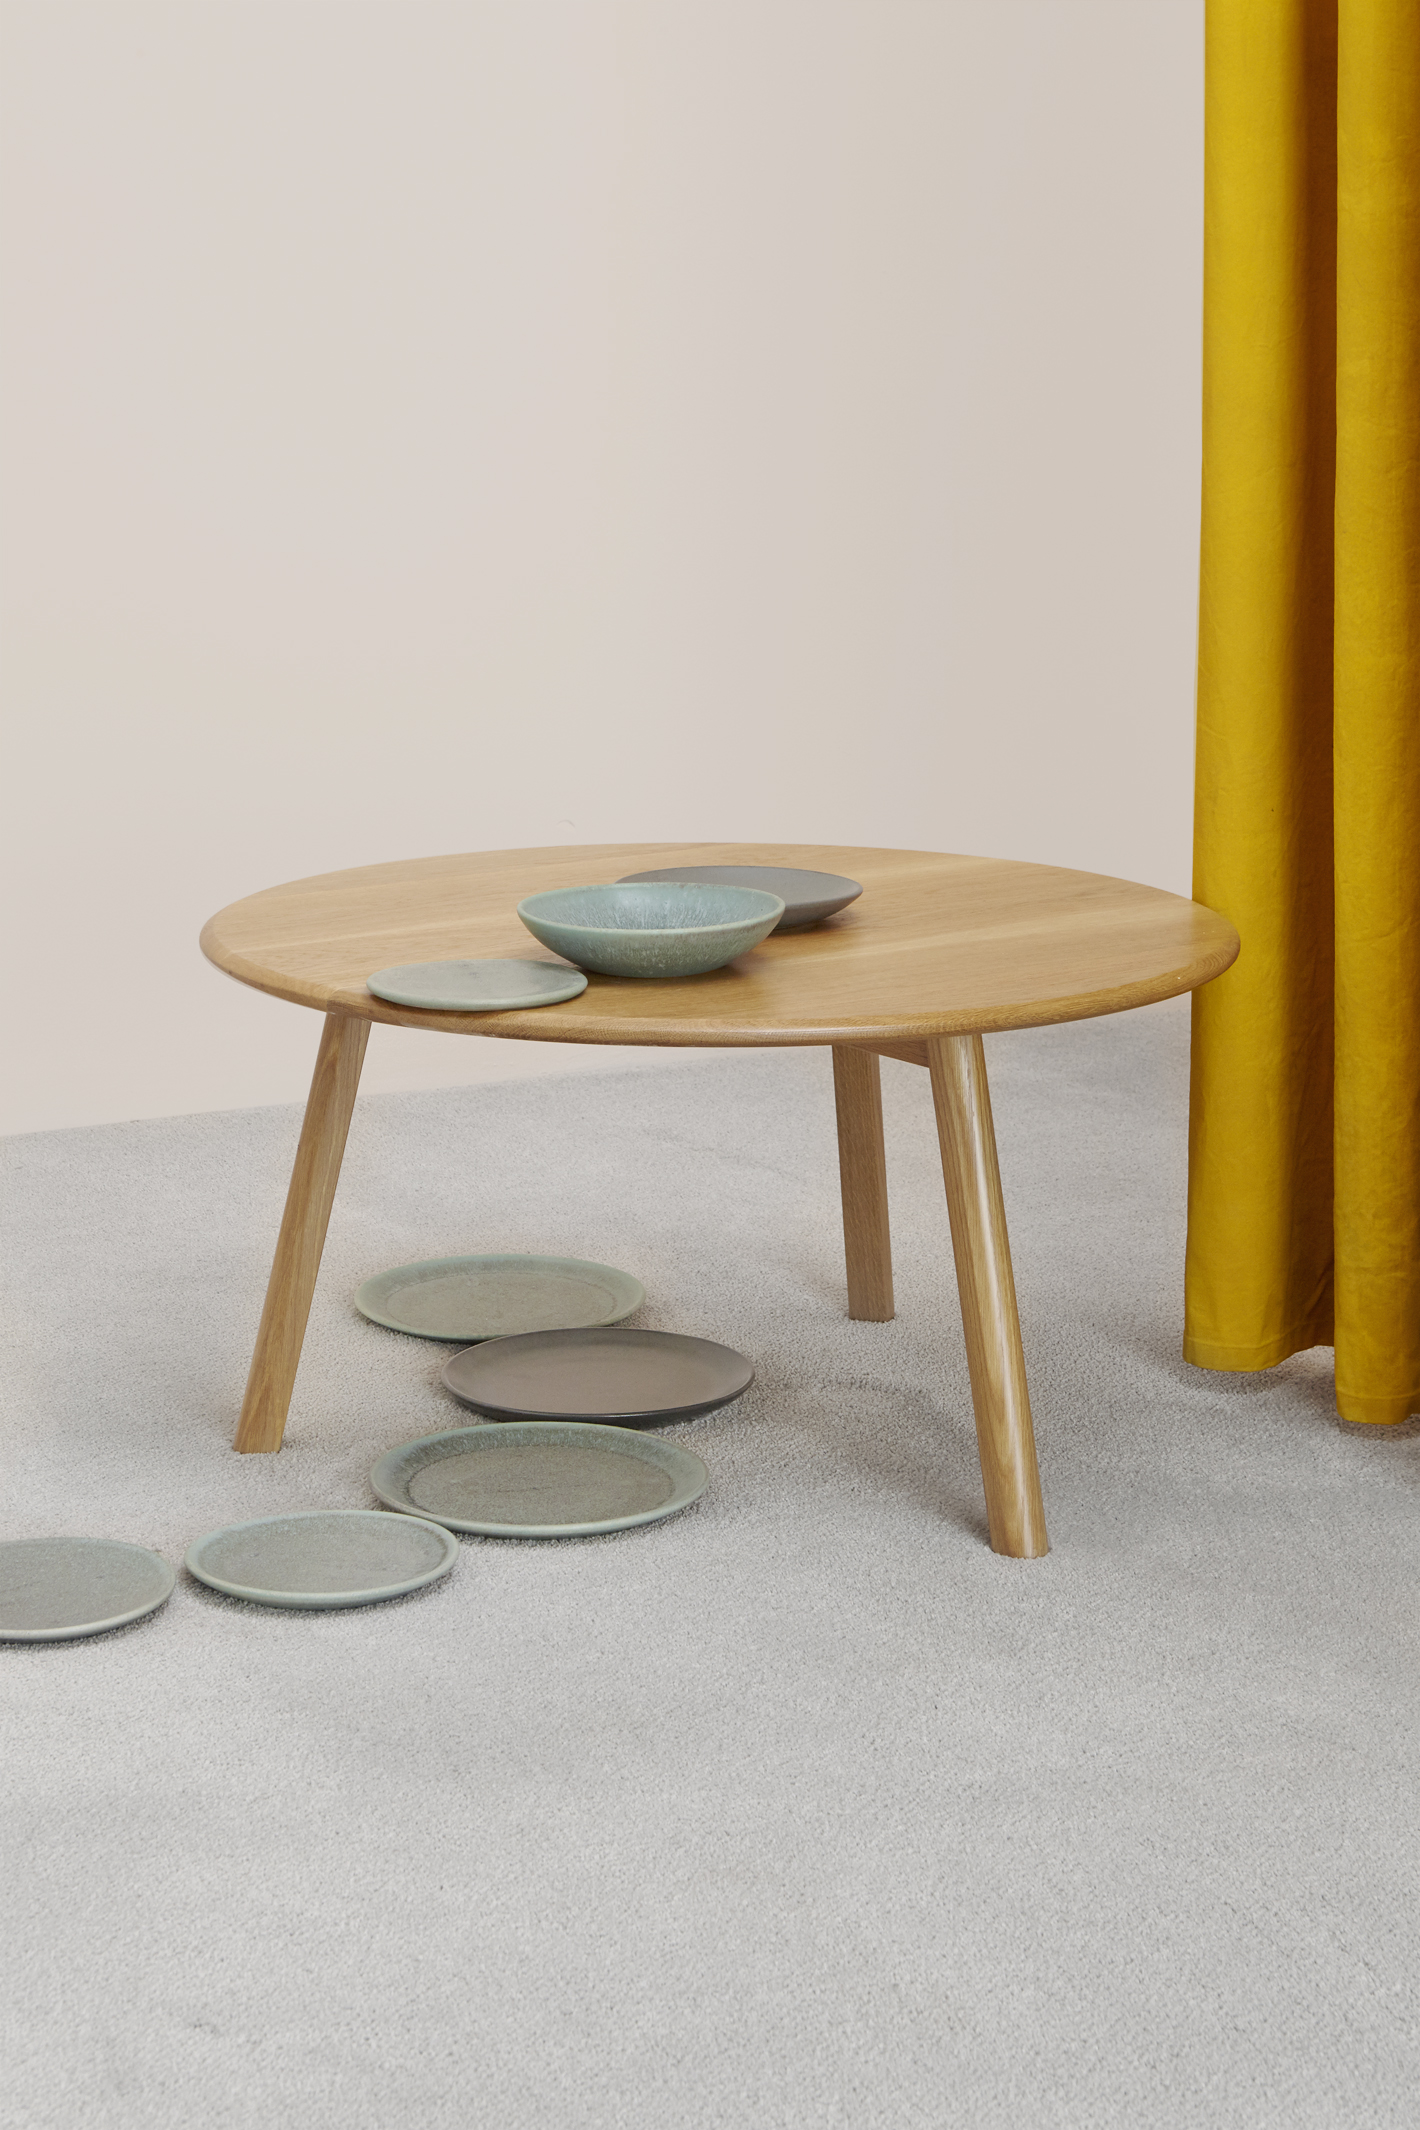 Brooke table and CG ceramics